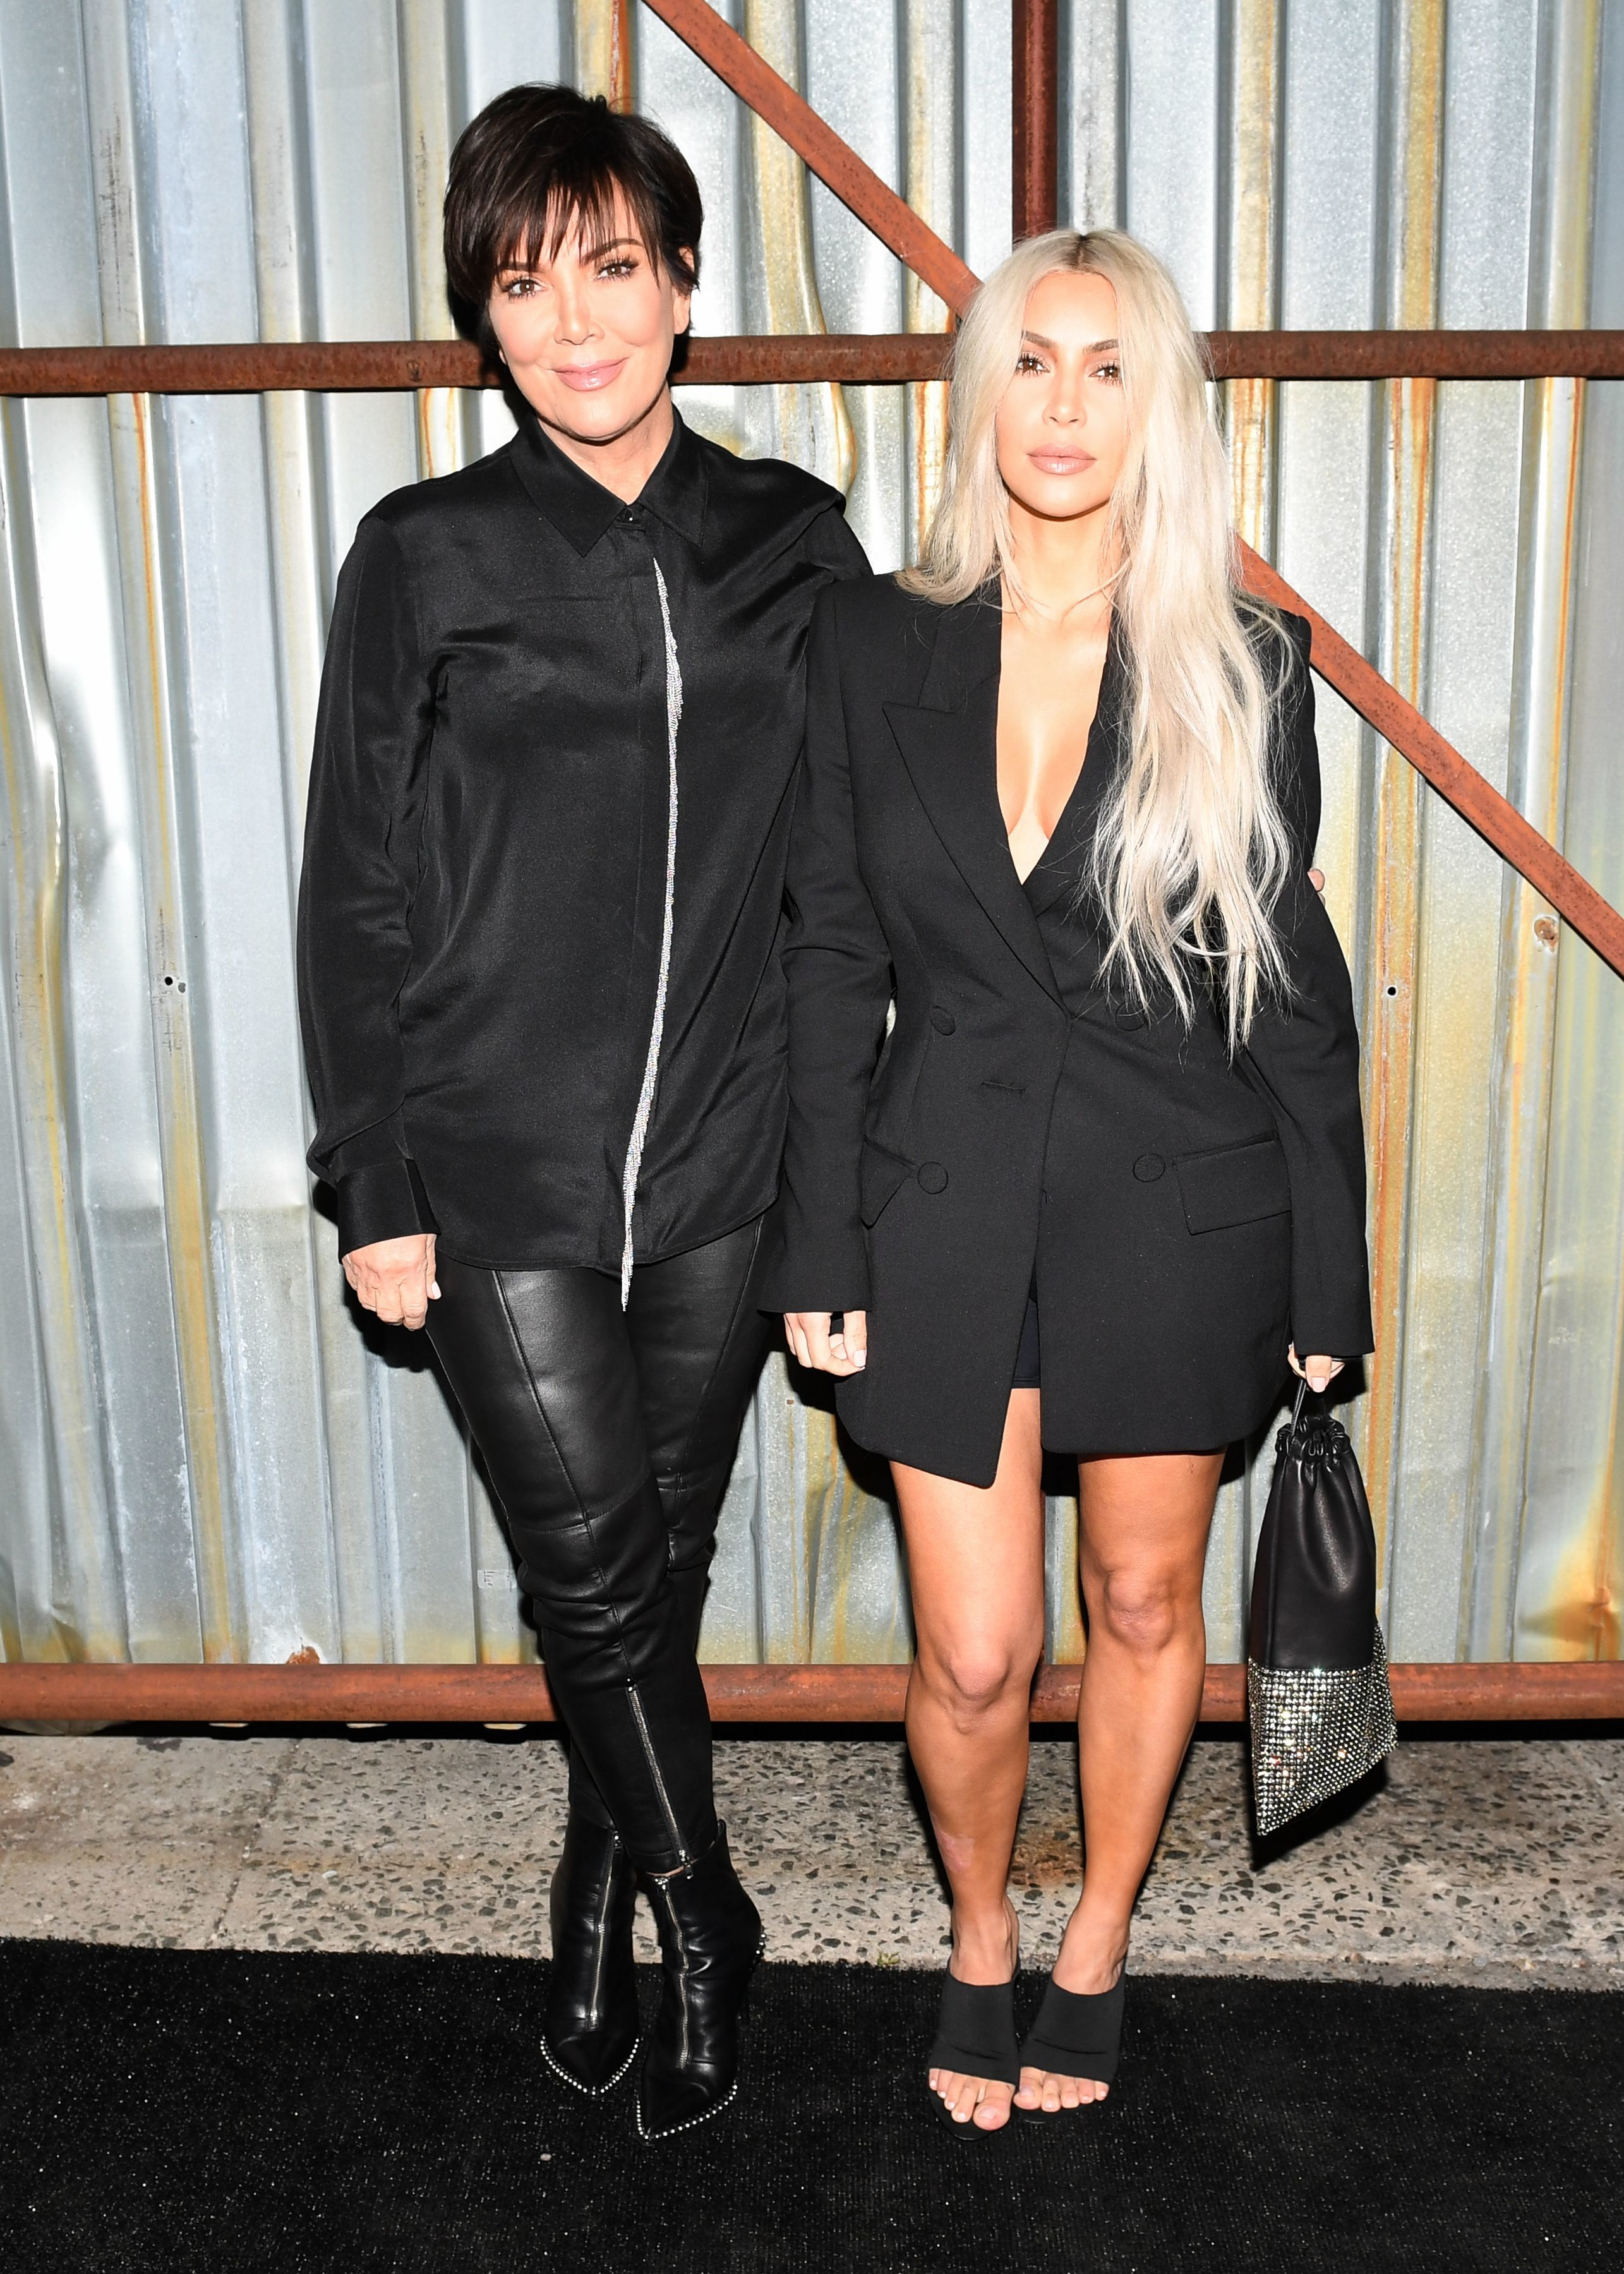 Kris Jenner and Kim Kardashian West attend the Alexander Wang show Spring/Summer 2018 during New York Fashion Week in New York City on Sept. 9, 2017.